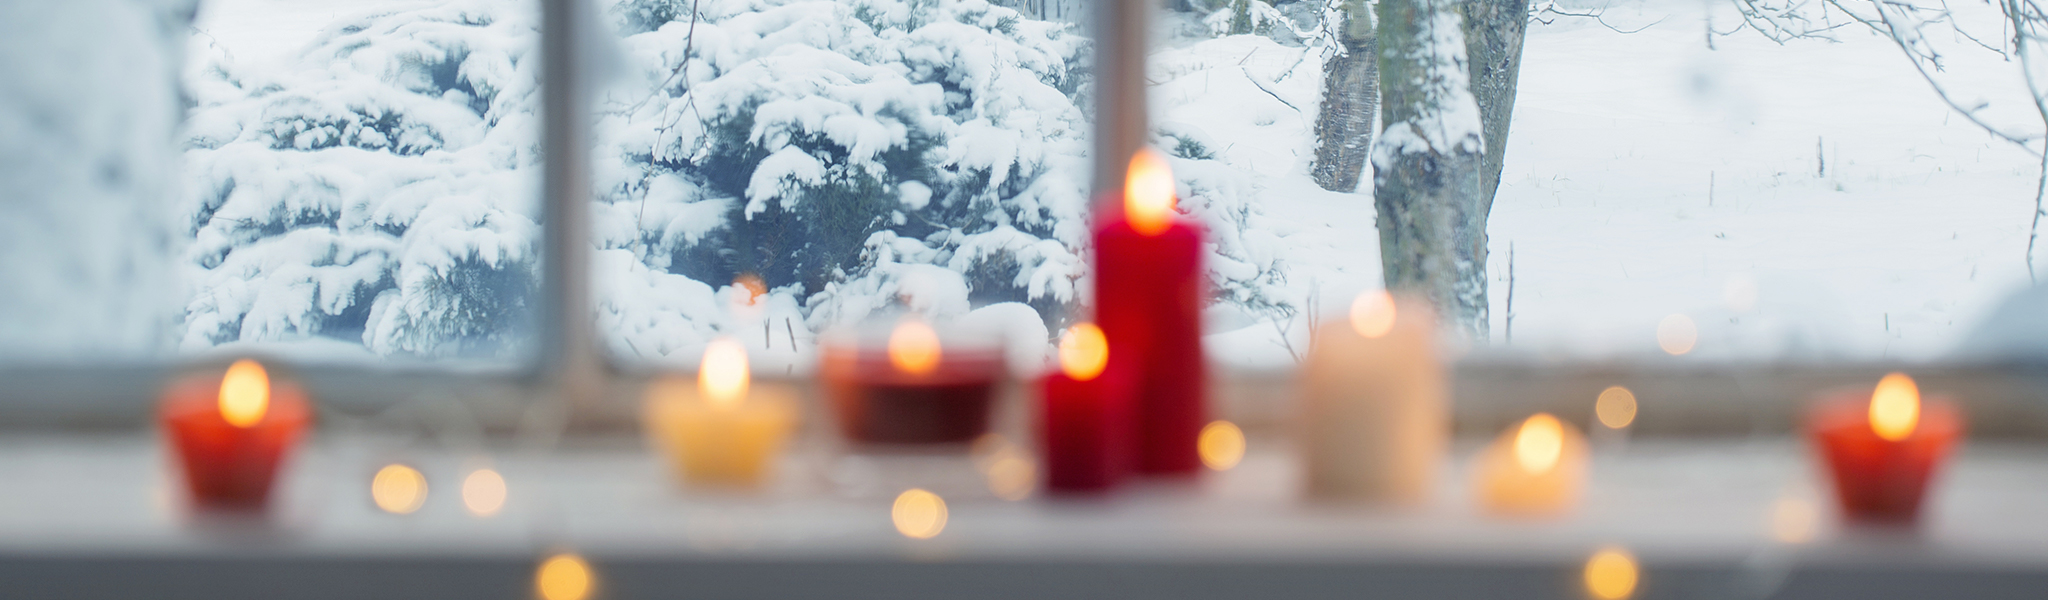 photo depicting candles lit in front of a wintery window